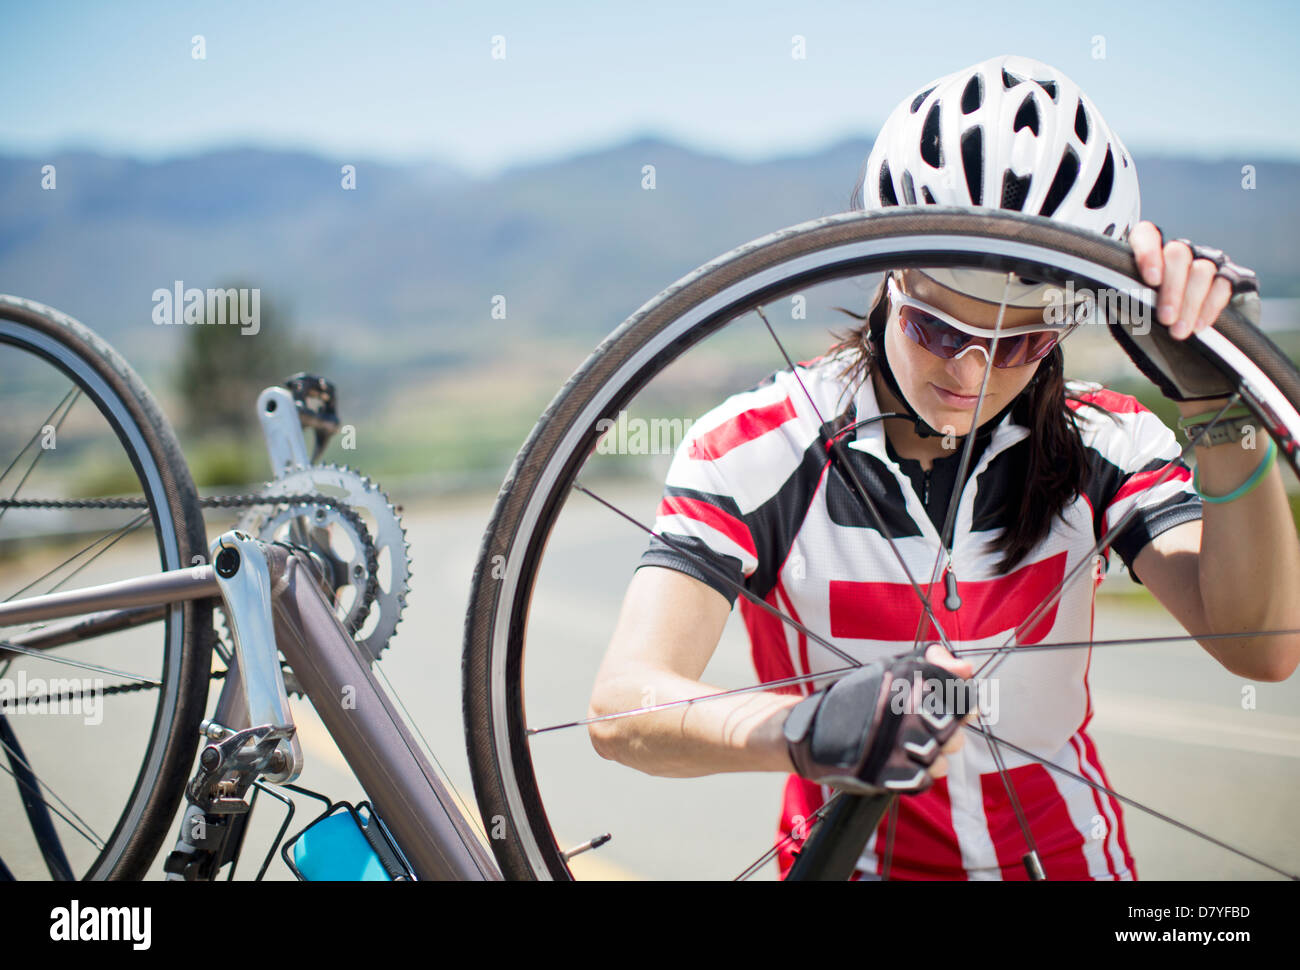 Cyclist adjusting tire on rural road - Stock Image